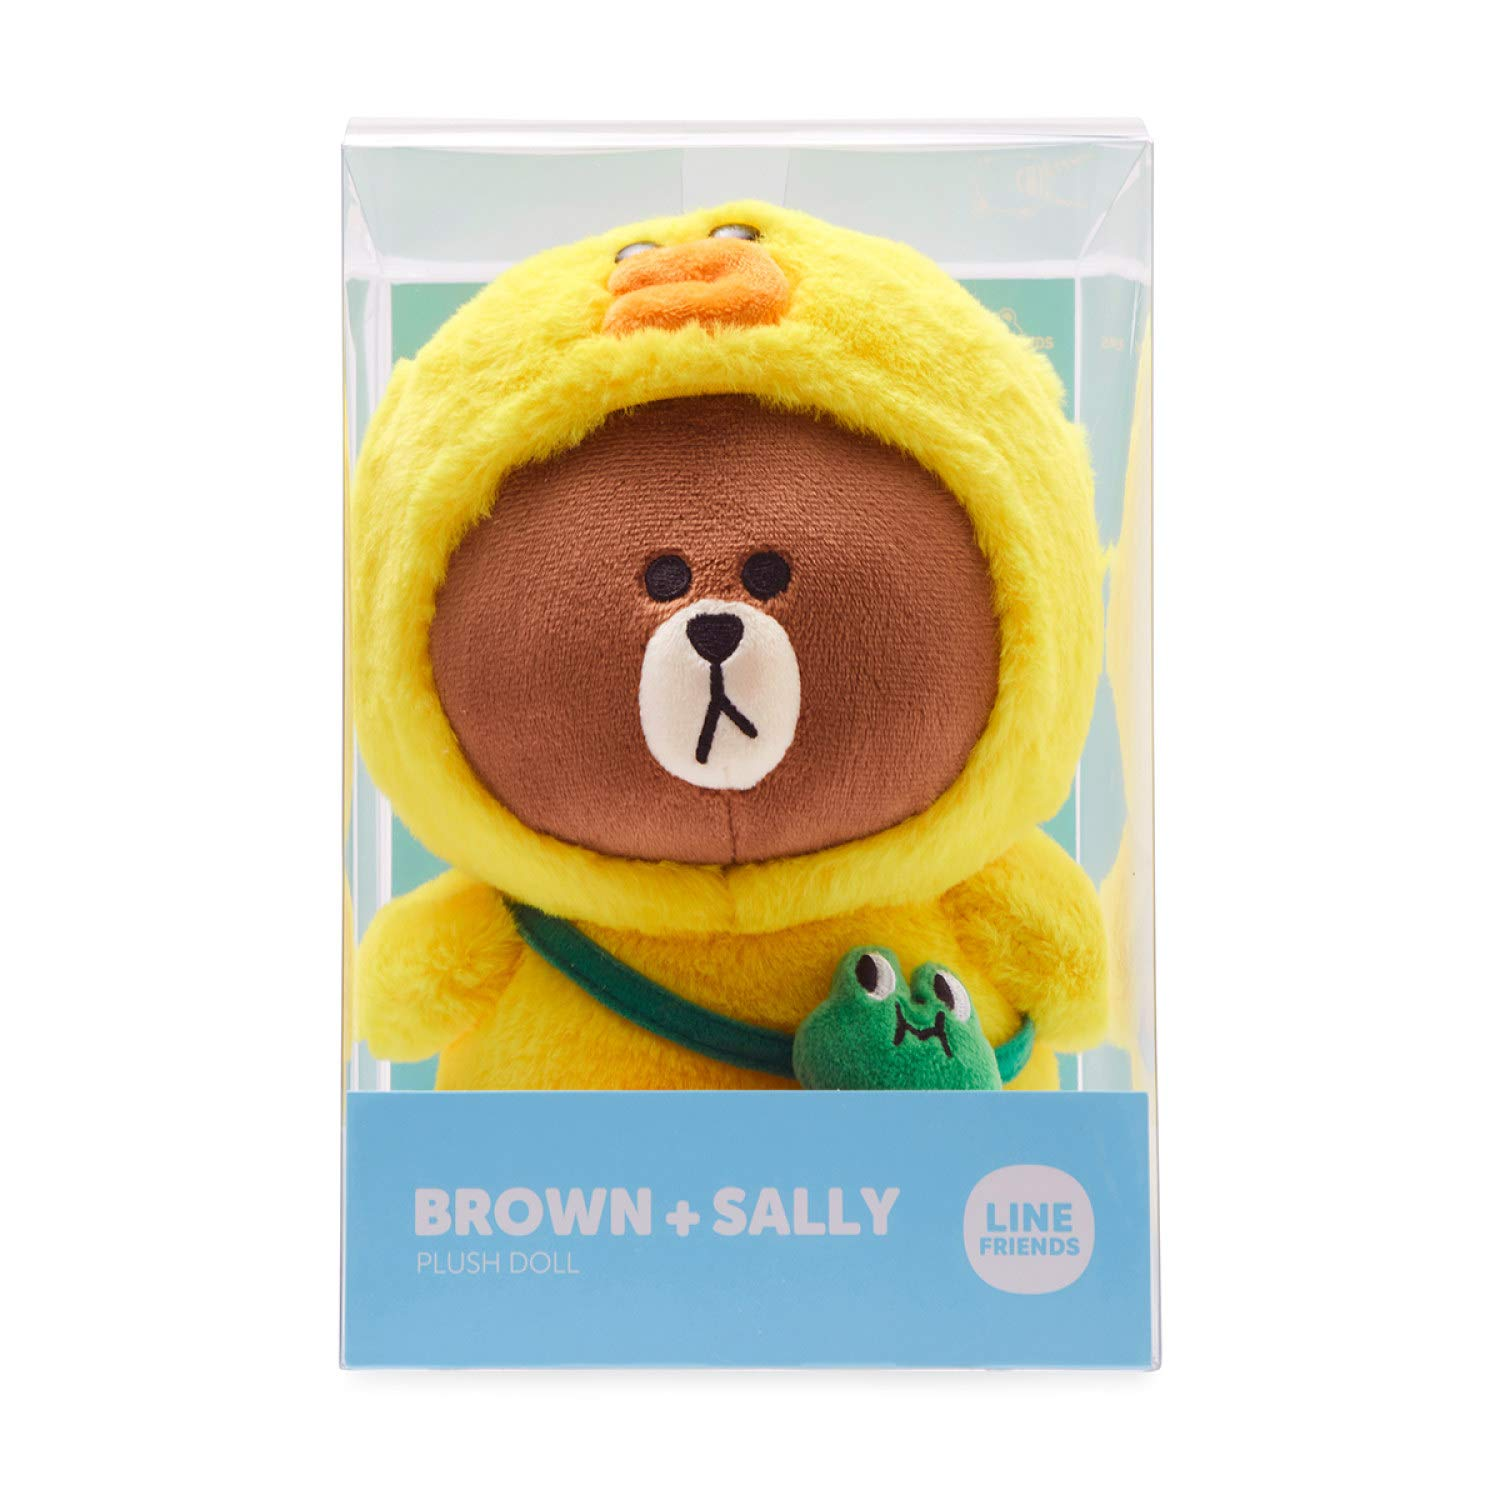 Brown in Sally Character Costume Soft Toy Figure 10 Inches Yellow//Brown LINE FRIENDS Plush Standing Doll